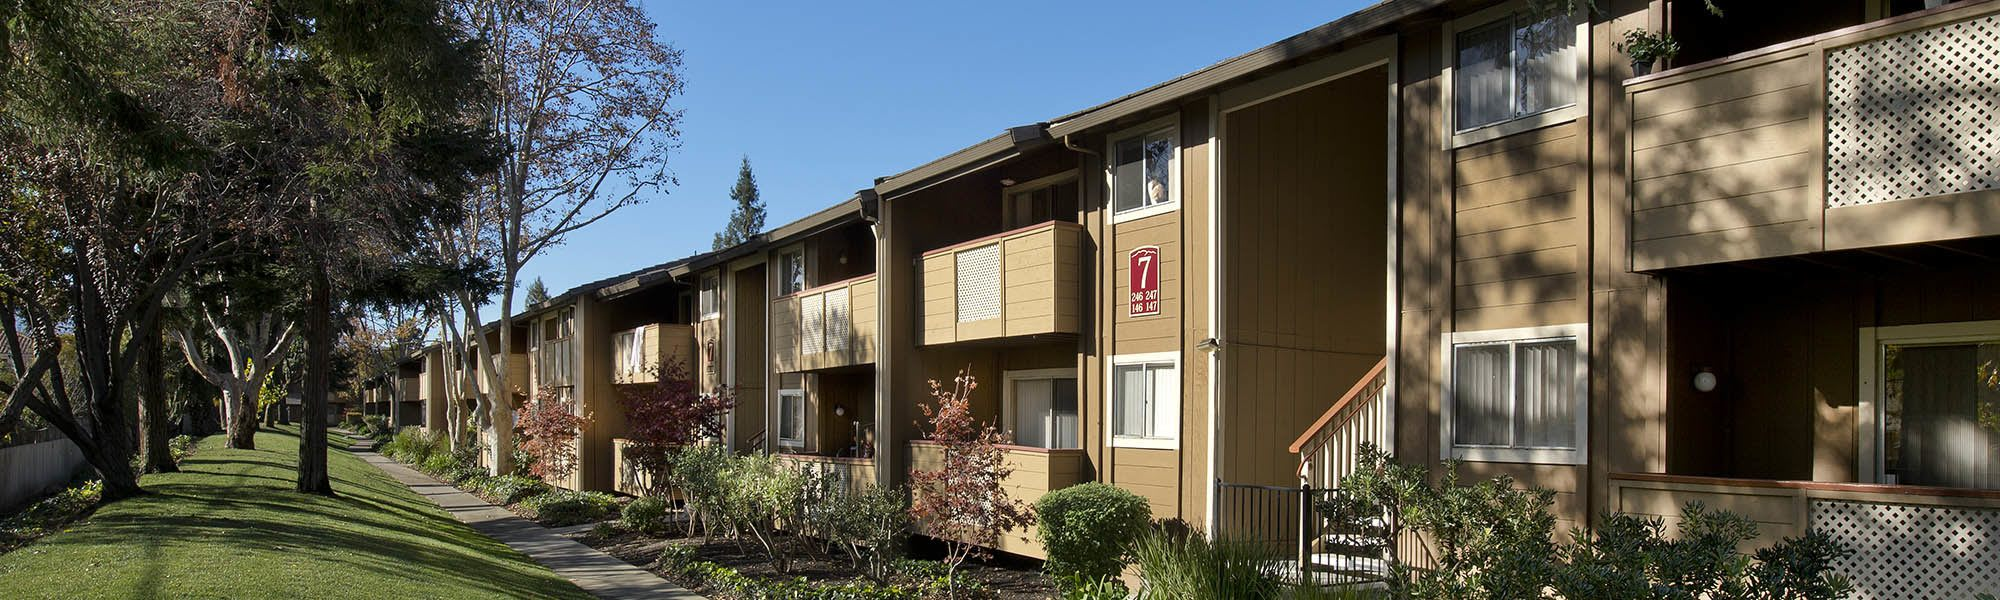 Read our privacy policy on our website for Valley Ridge Apartment Homes